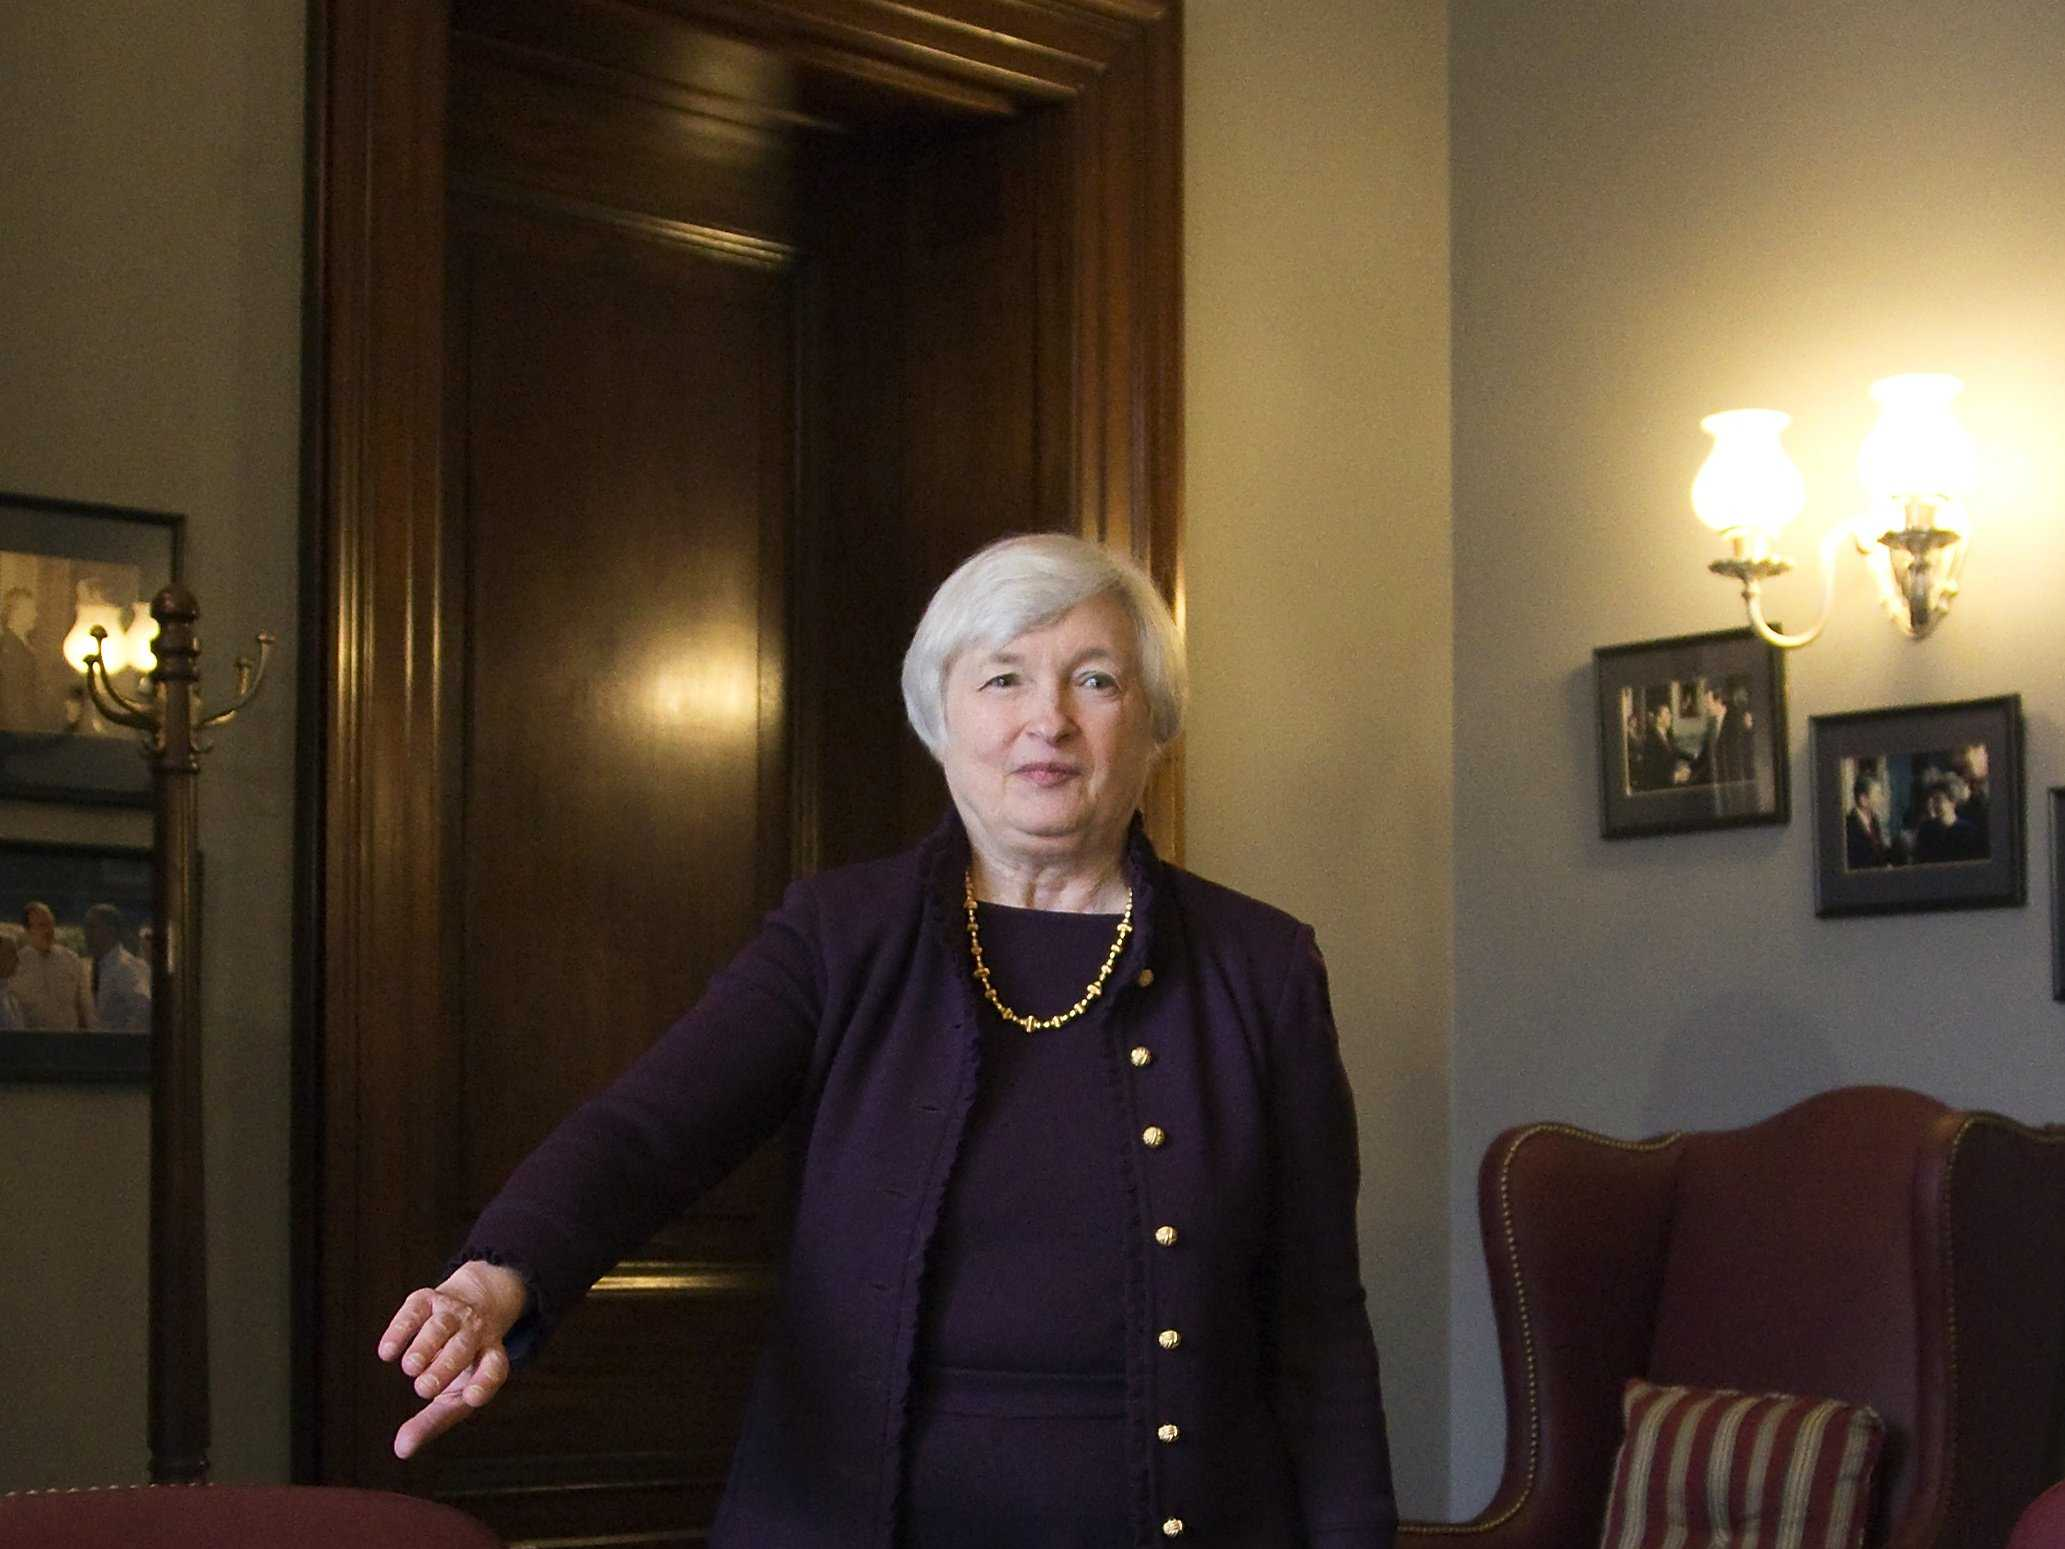 yellen-fed-expected-to-trim-bond-buying-rewrite-rates-guidance